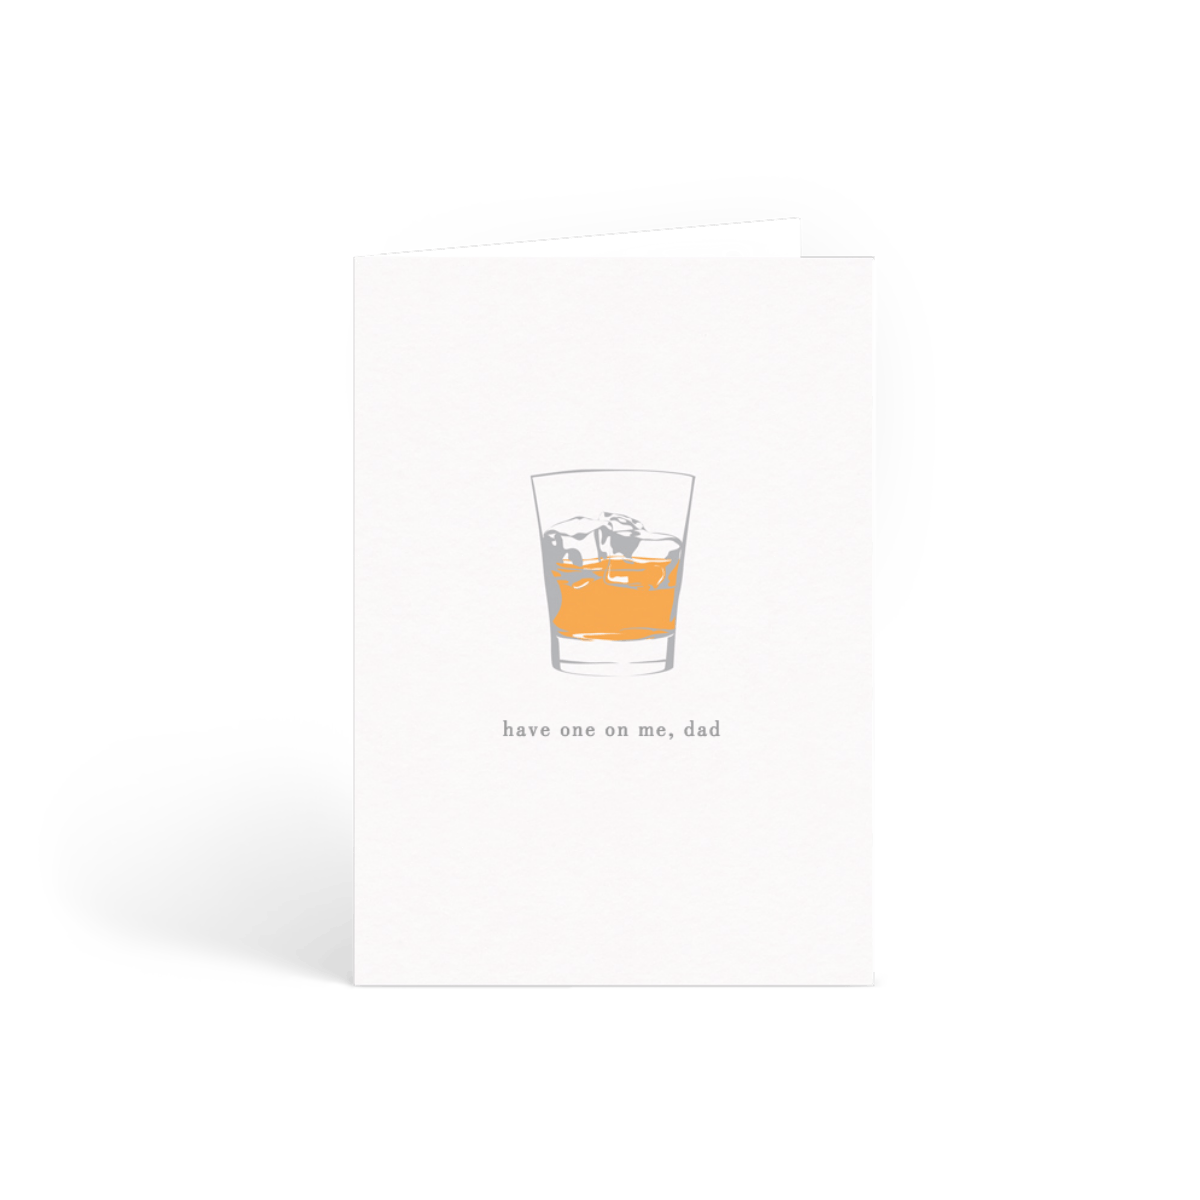 Https%3a%2f%2fwww.papier.com%2fproduct image%2f8366%2f2%2fglass of whiskey 2076 avant 1542384456.png?ixlib=rb 1.1